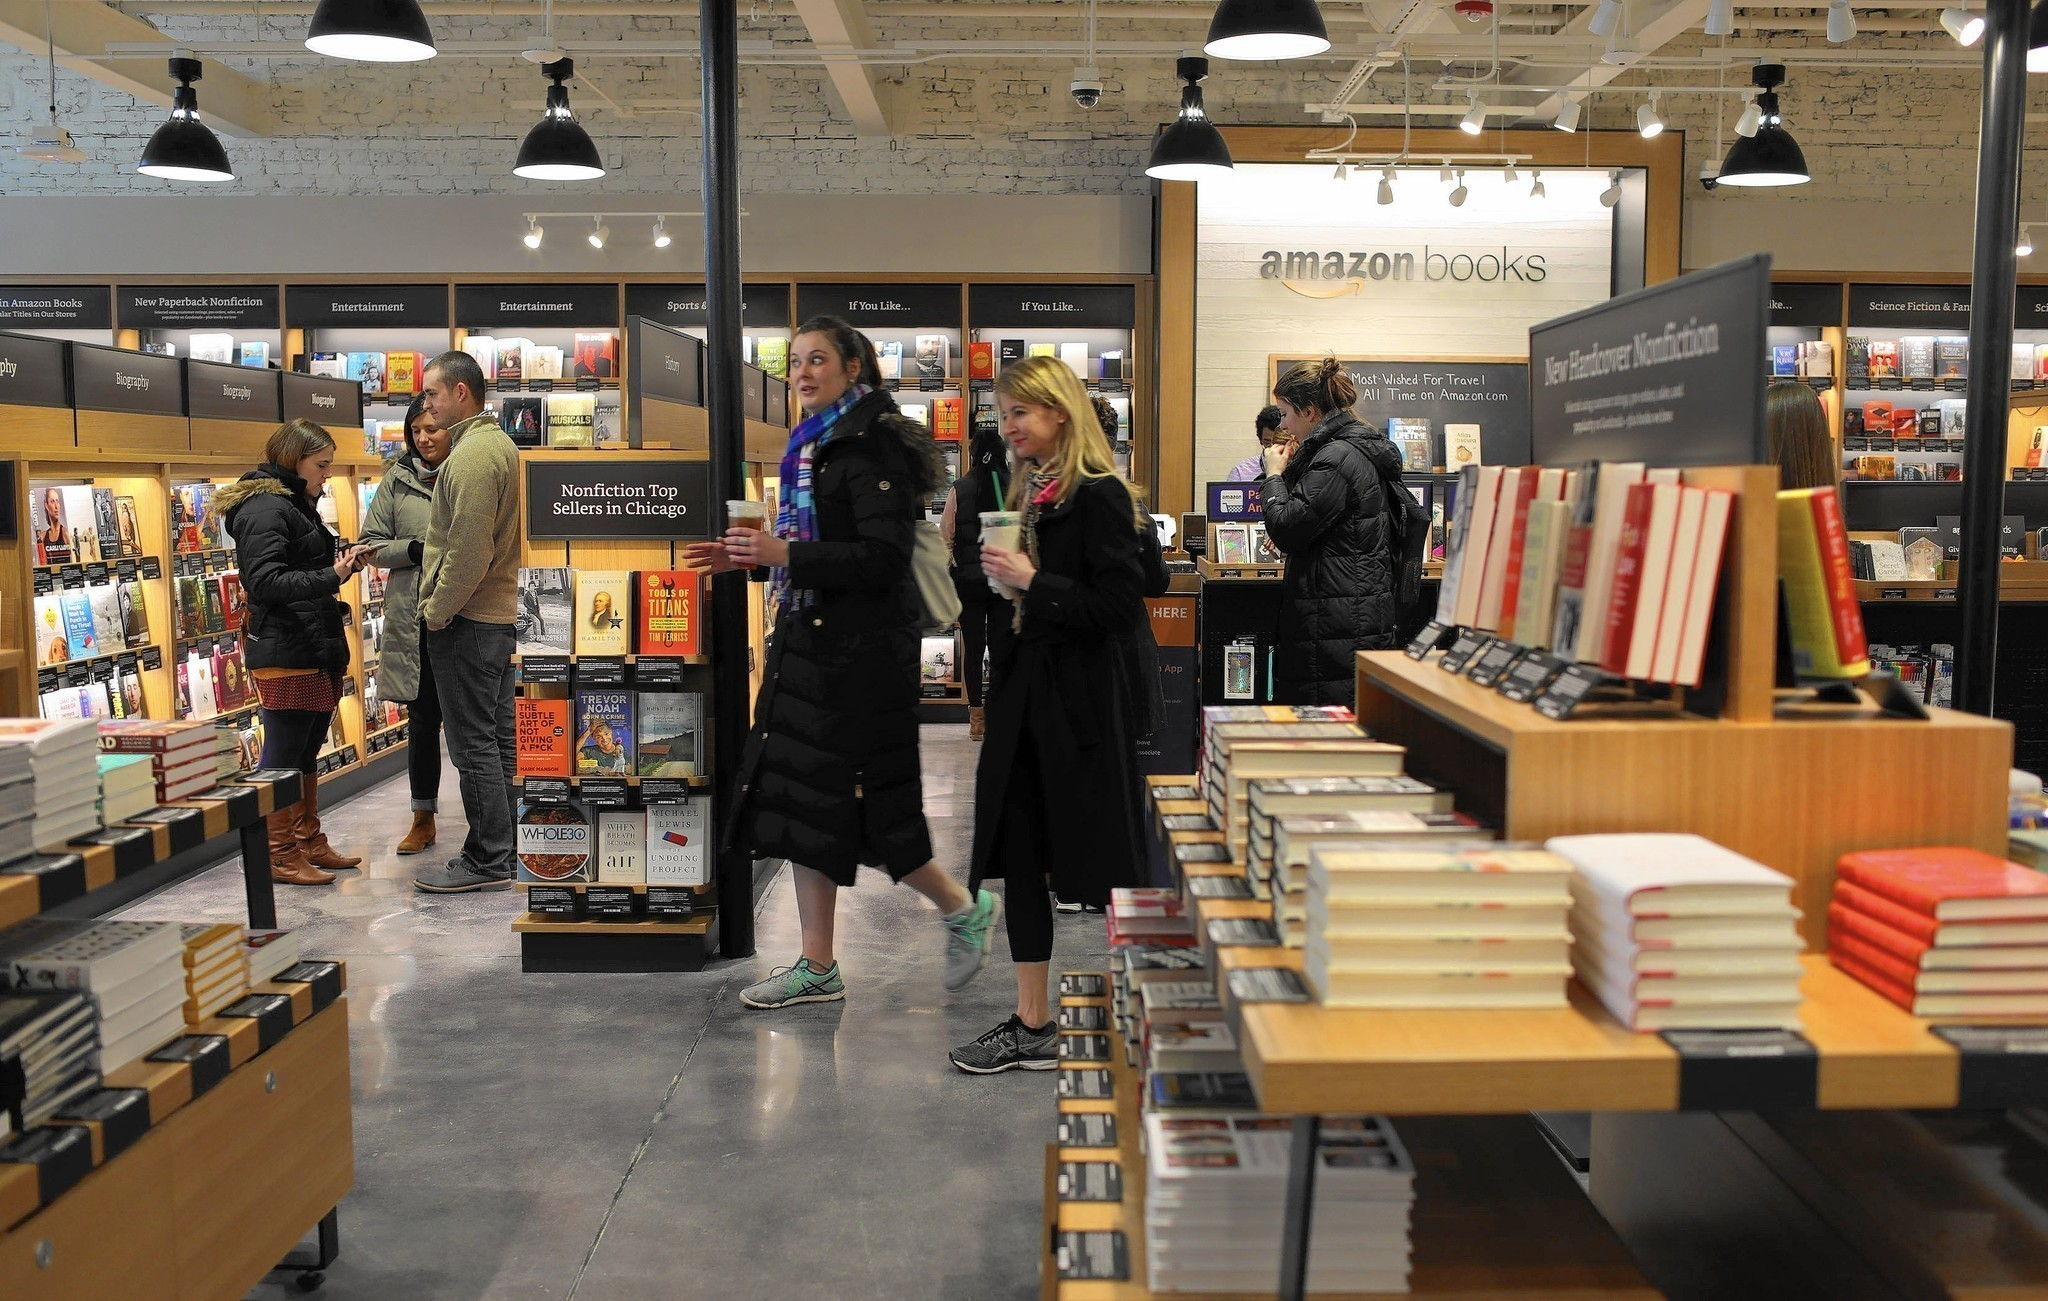 Amazon Takes A Page From Bricks And Mortar Bookstores